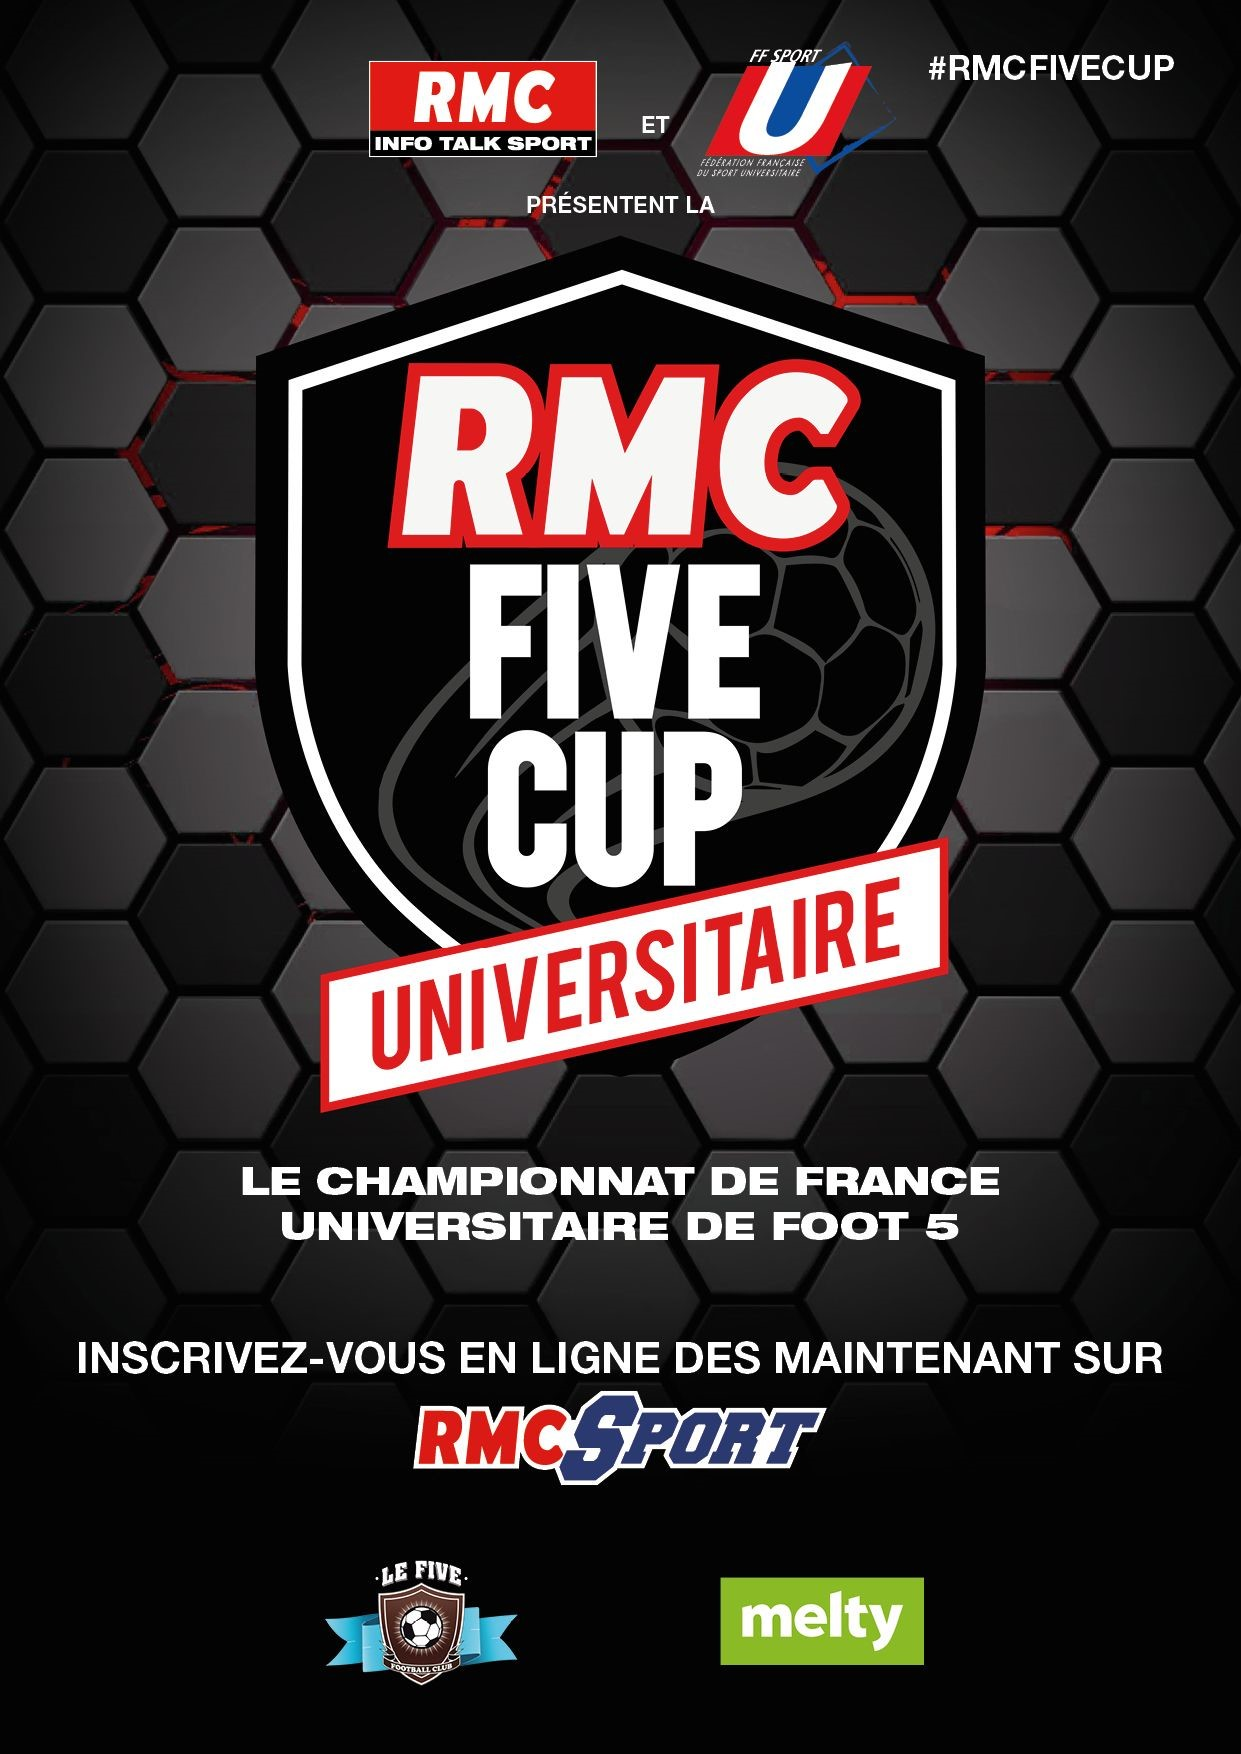 RMC Five cup universitaire